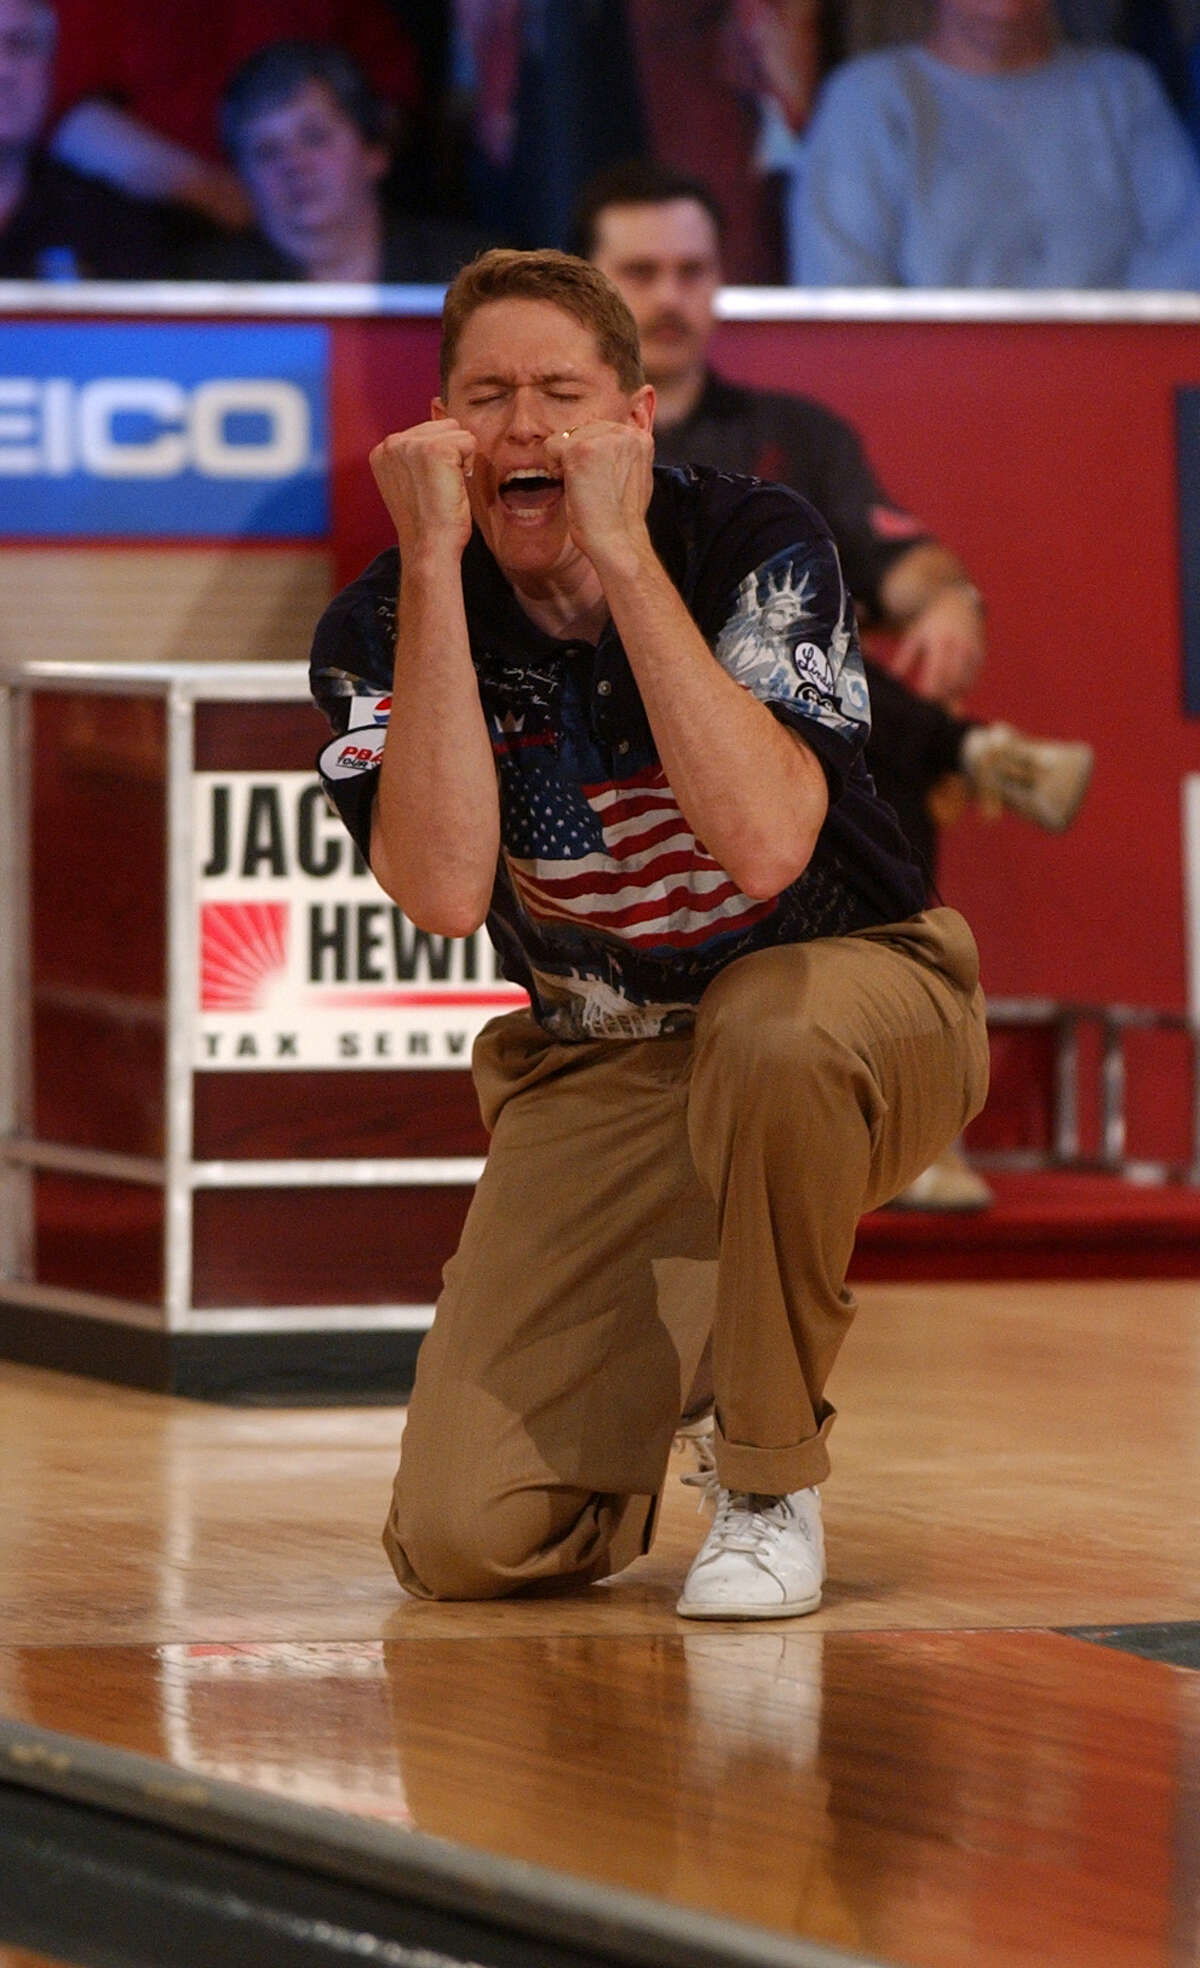 Times Union staff photo by Paul Buckowski Chris Barnes reacts to a strike he had just bowled in the Championship Match of the PBA Empire State Open on Sunday Nov. 23, 2003 at the Bowler's Club in Latham, N.Y. Barnes lost the match however to Ryan Schafer.